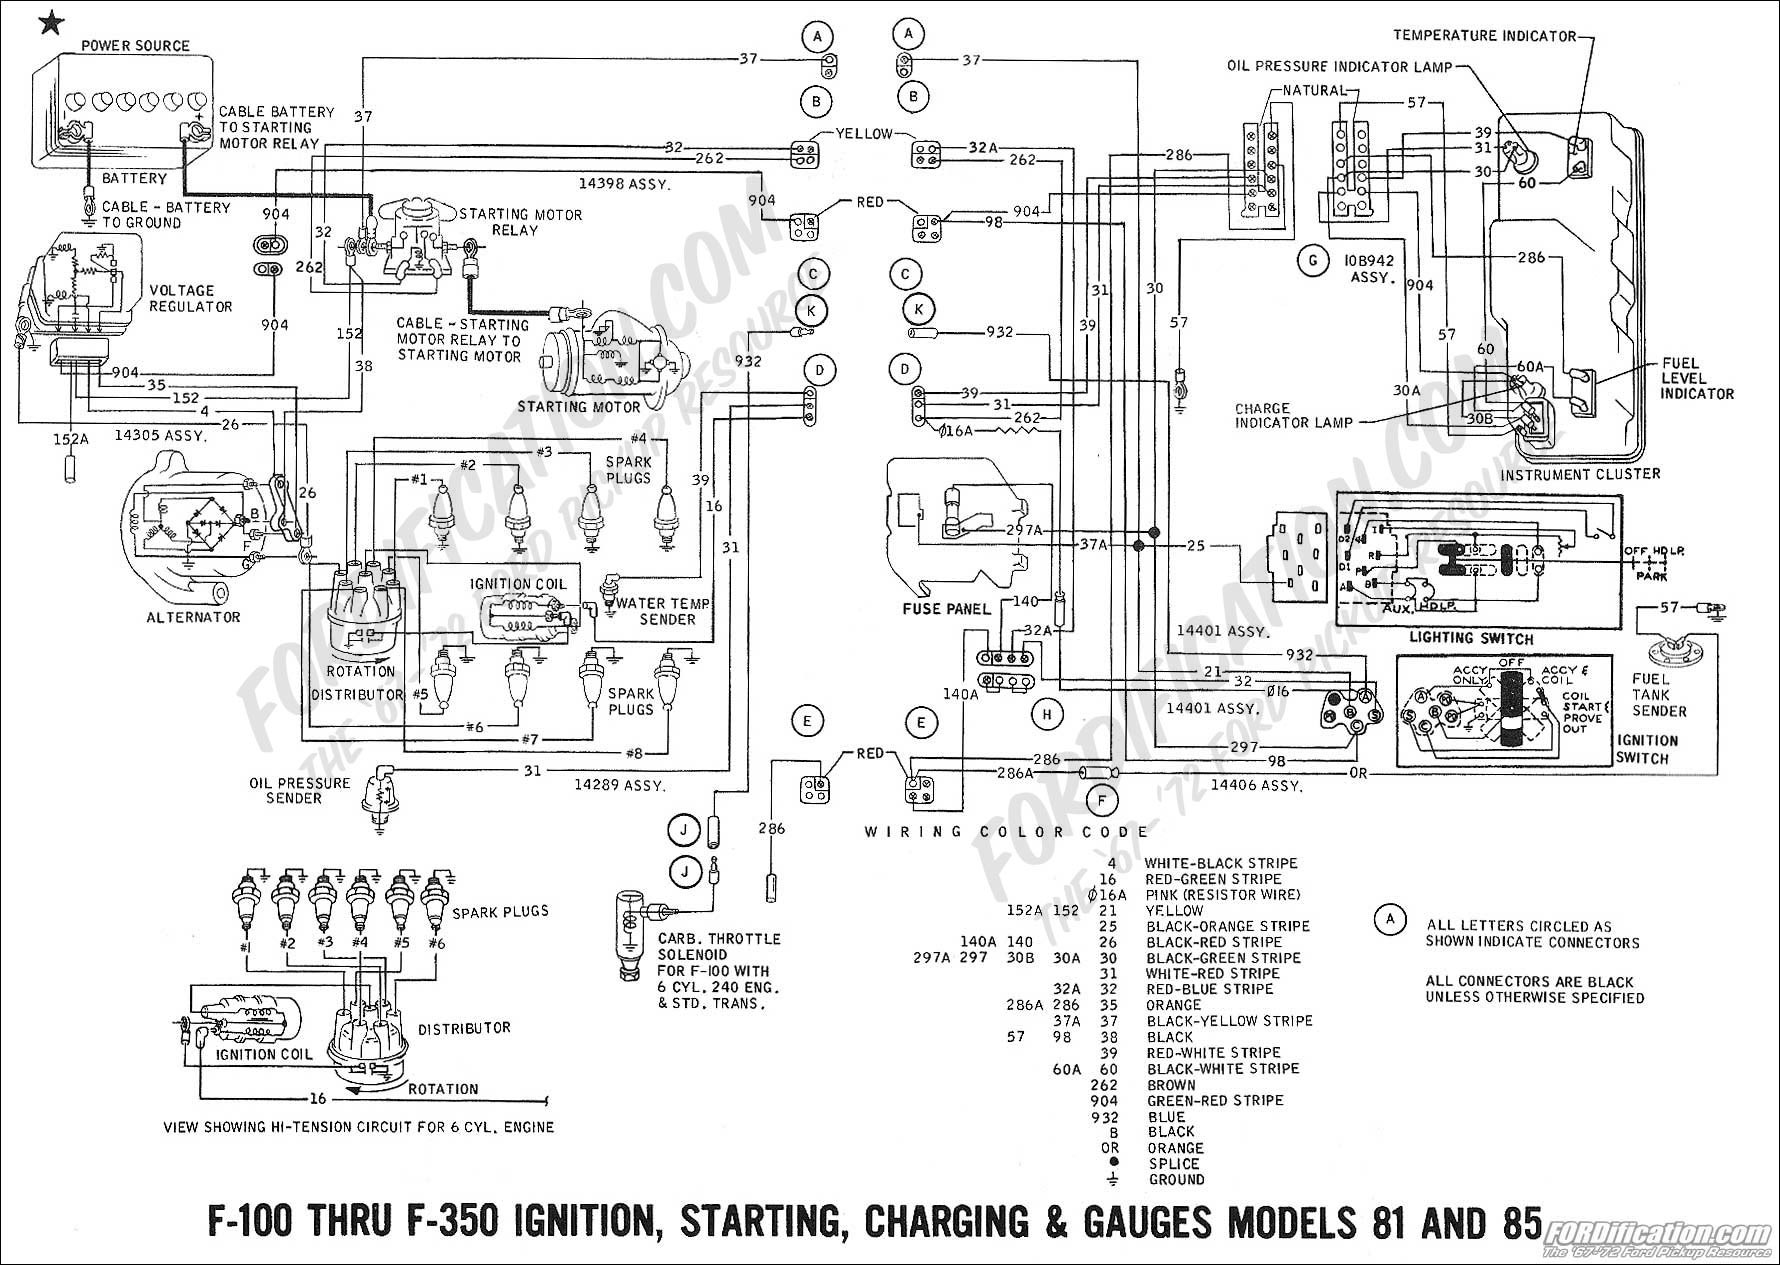 1983 Ford F100 Wiring Diagram - Wiring Data